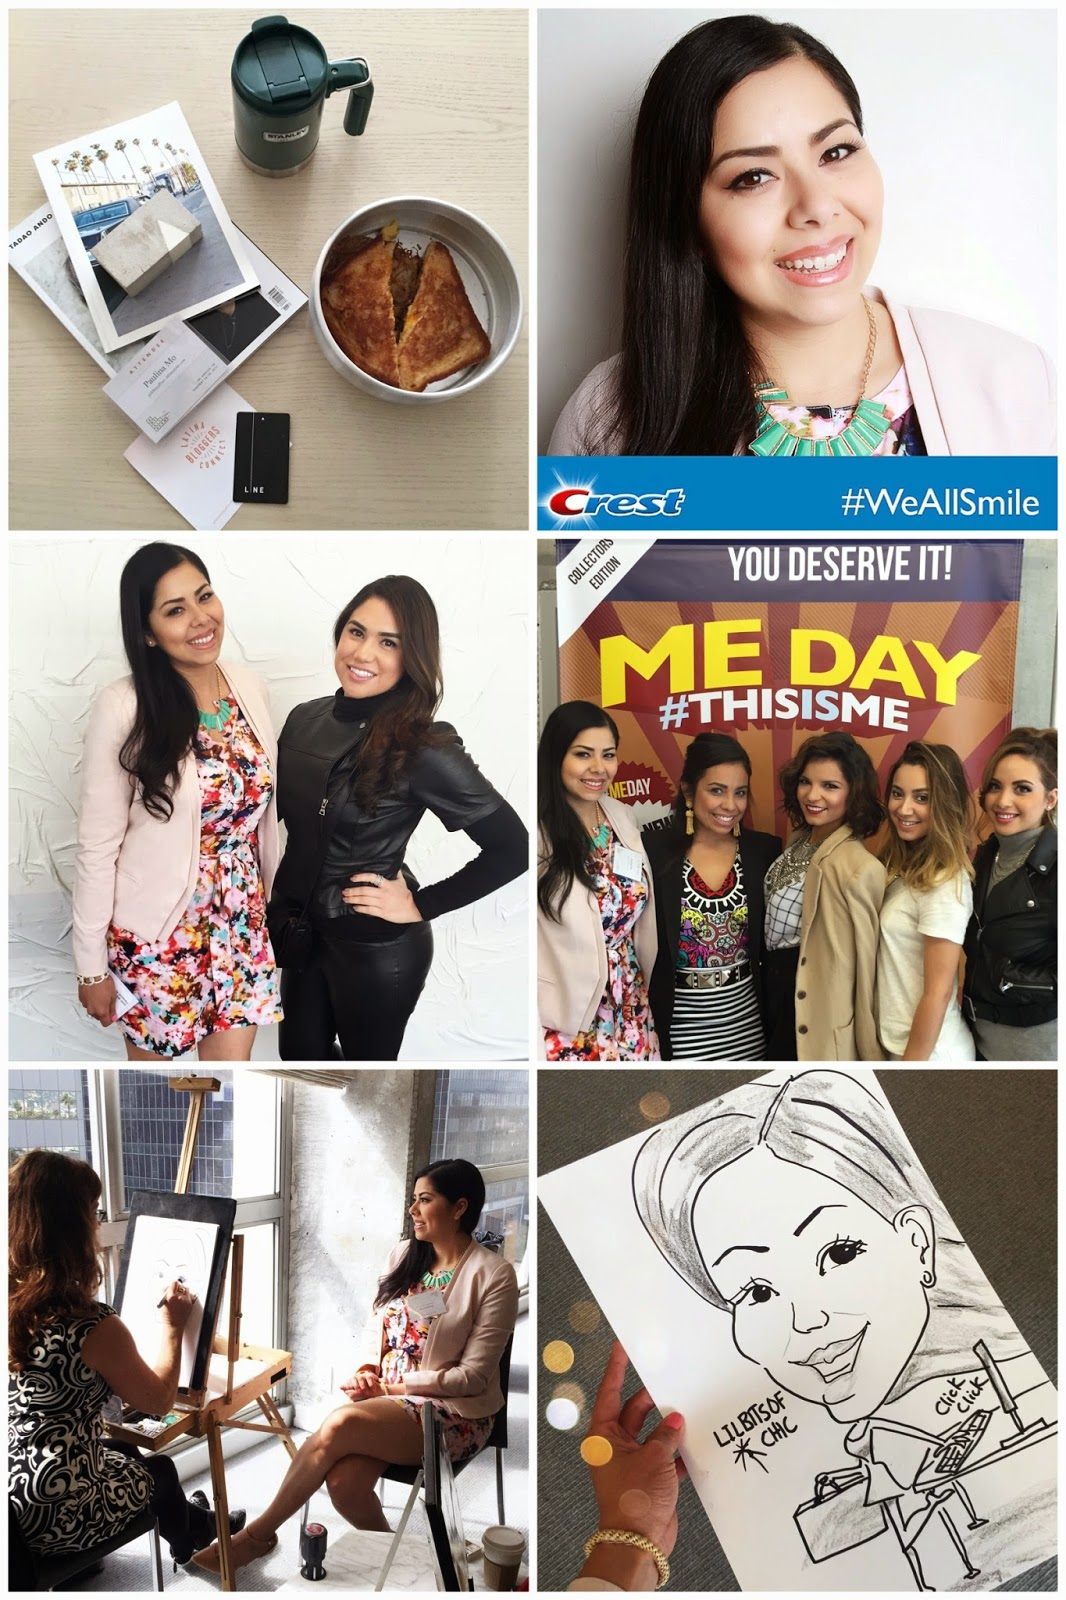 Latina Bloggers Conference, LINE hotel breakfast, room service at LINE hoel, #WeAllSmile, Caricature of a fashion blogger